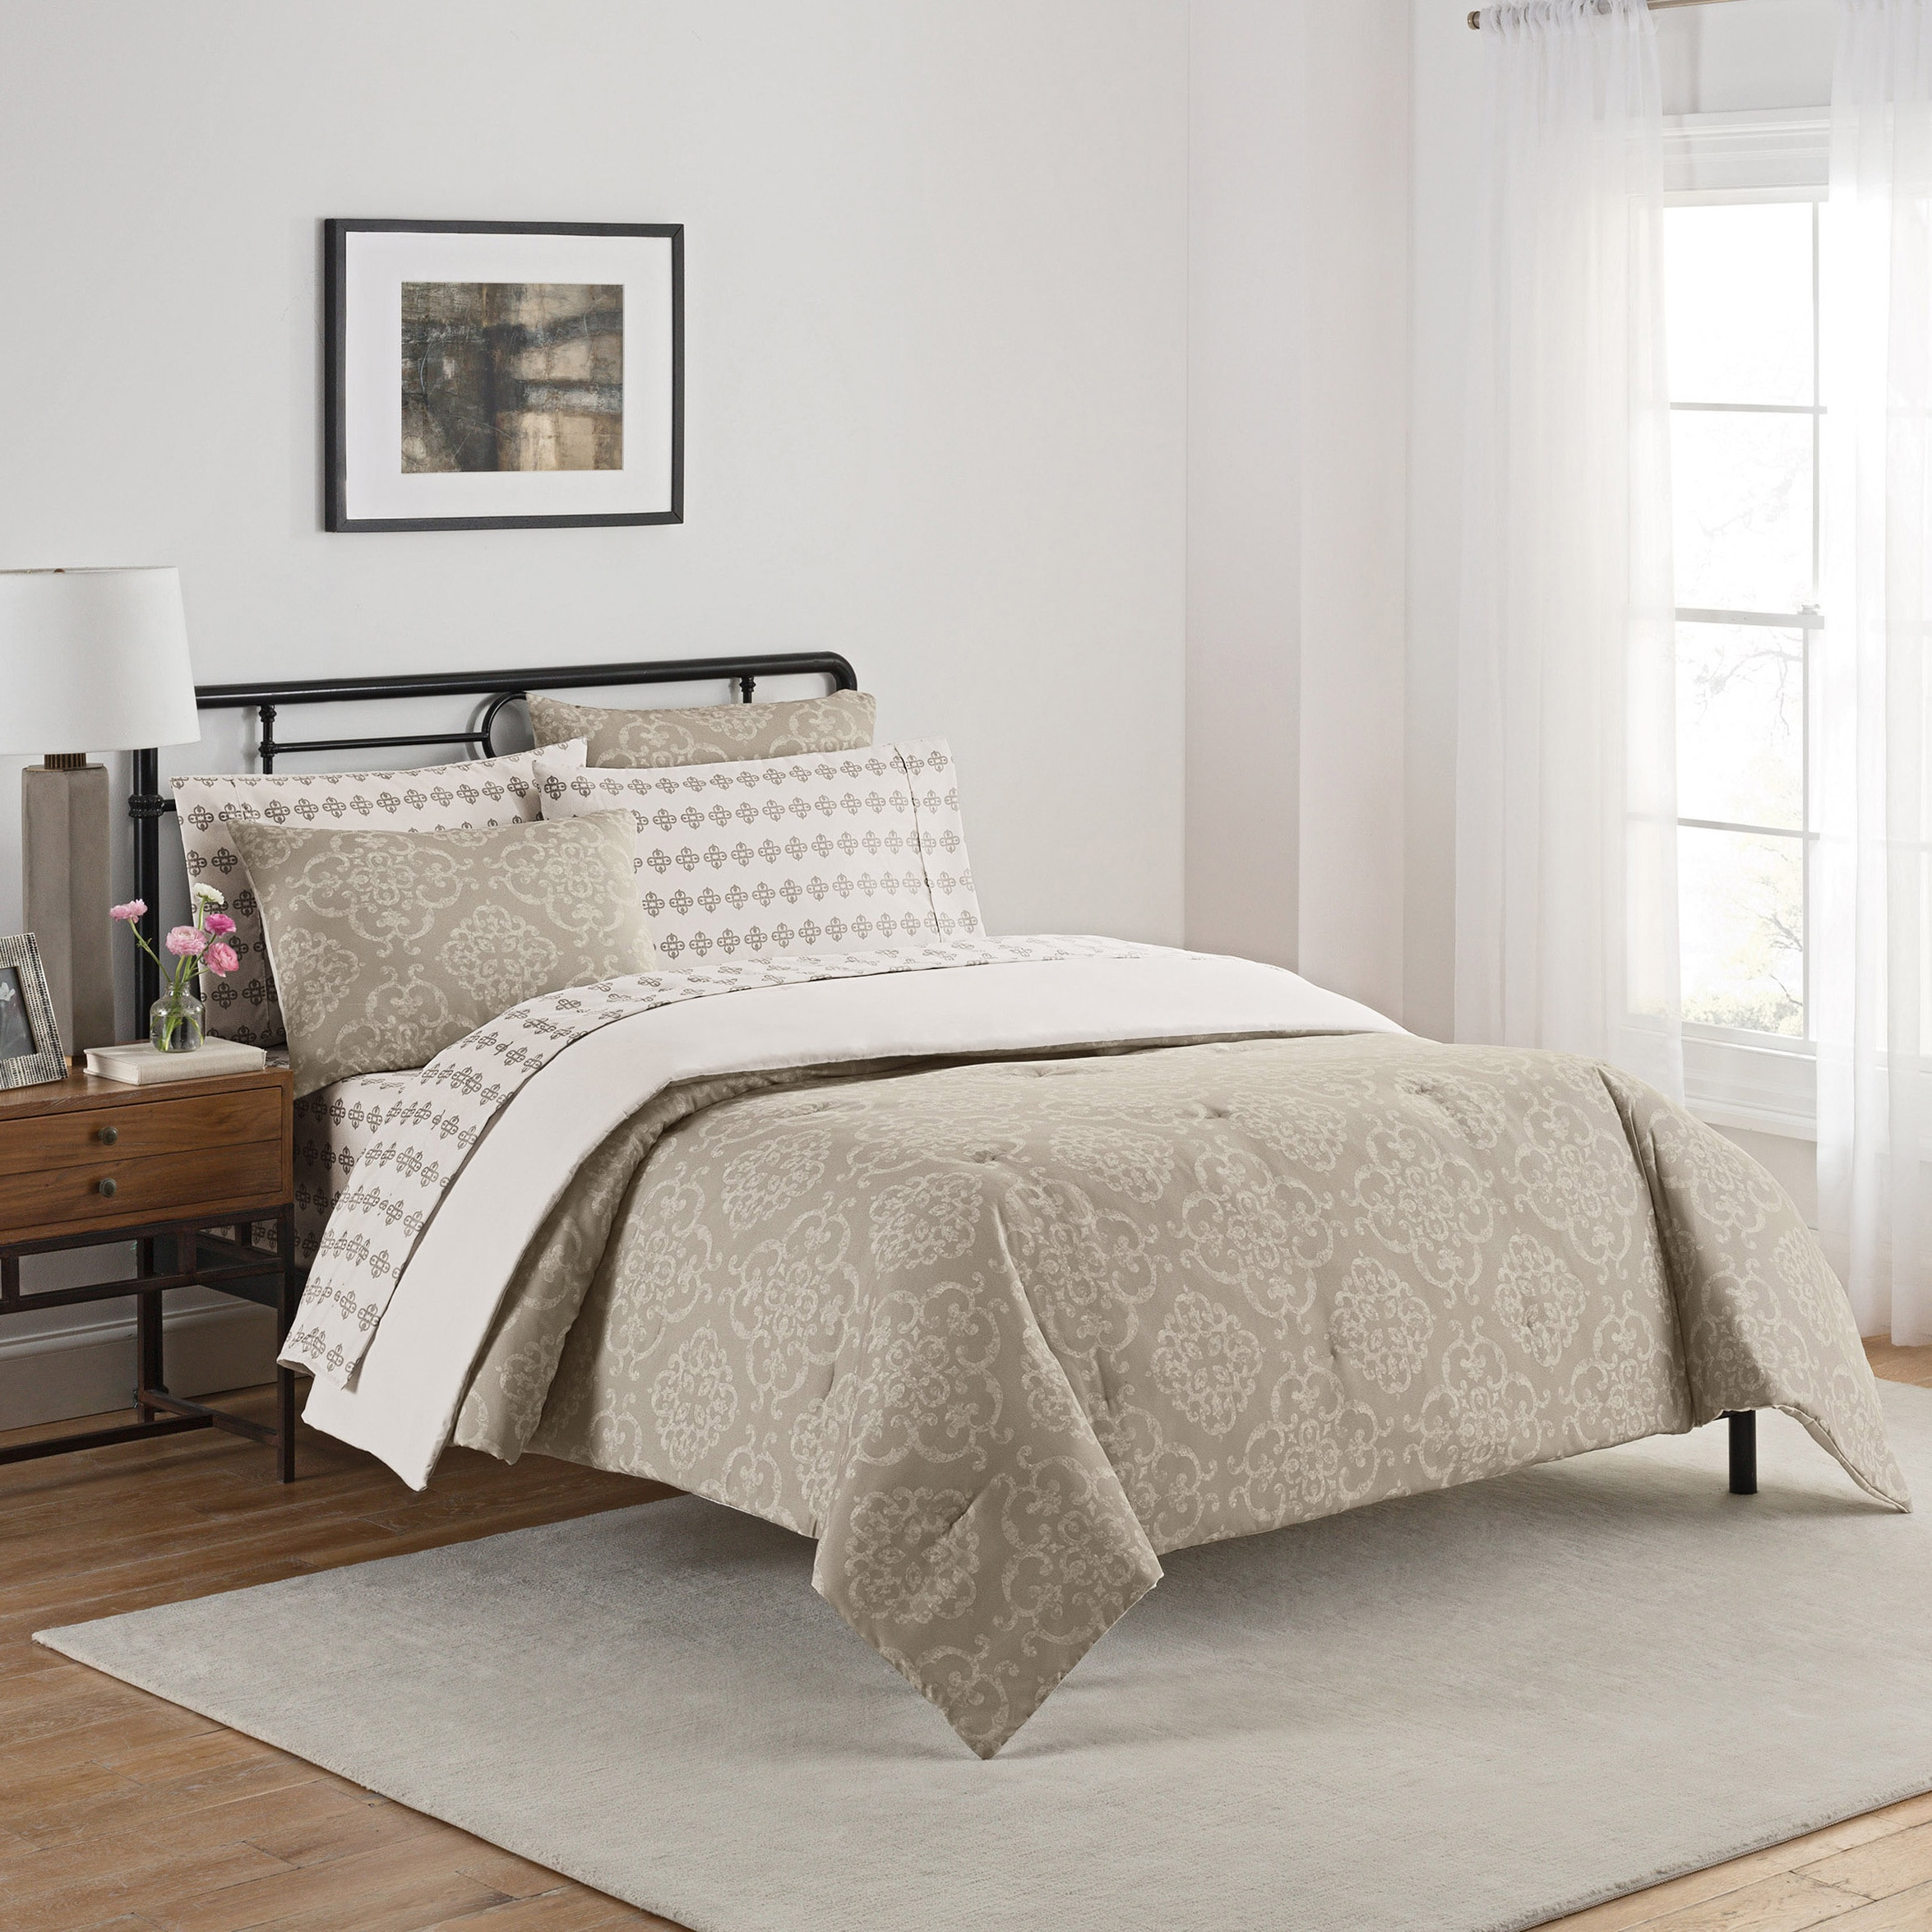 Simmons Lyon Bedding and Sheet Set (Queen - Grey) (Polyes...